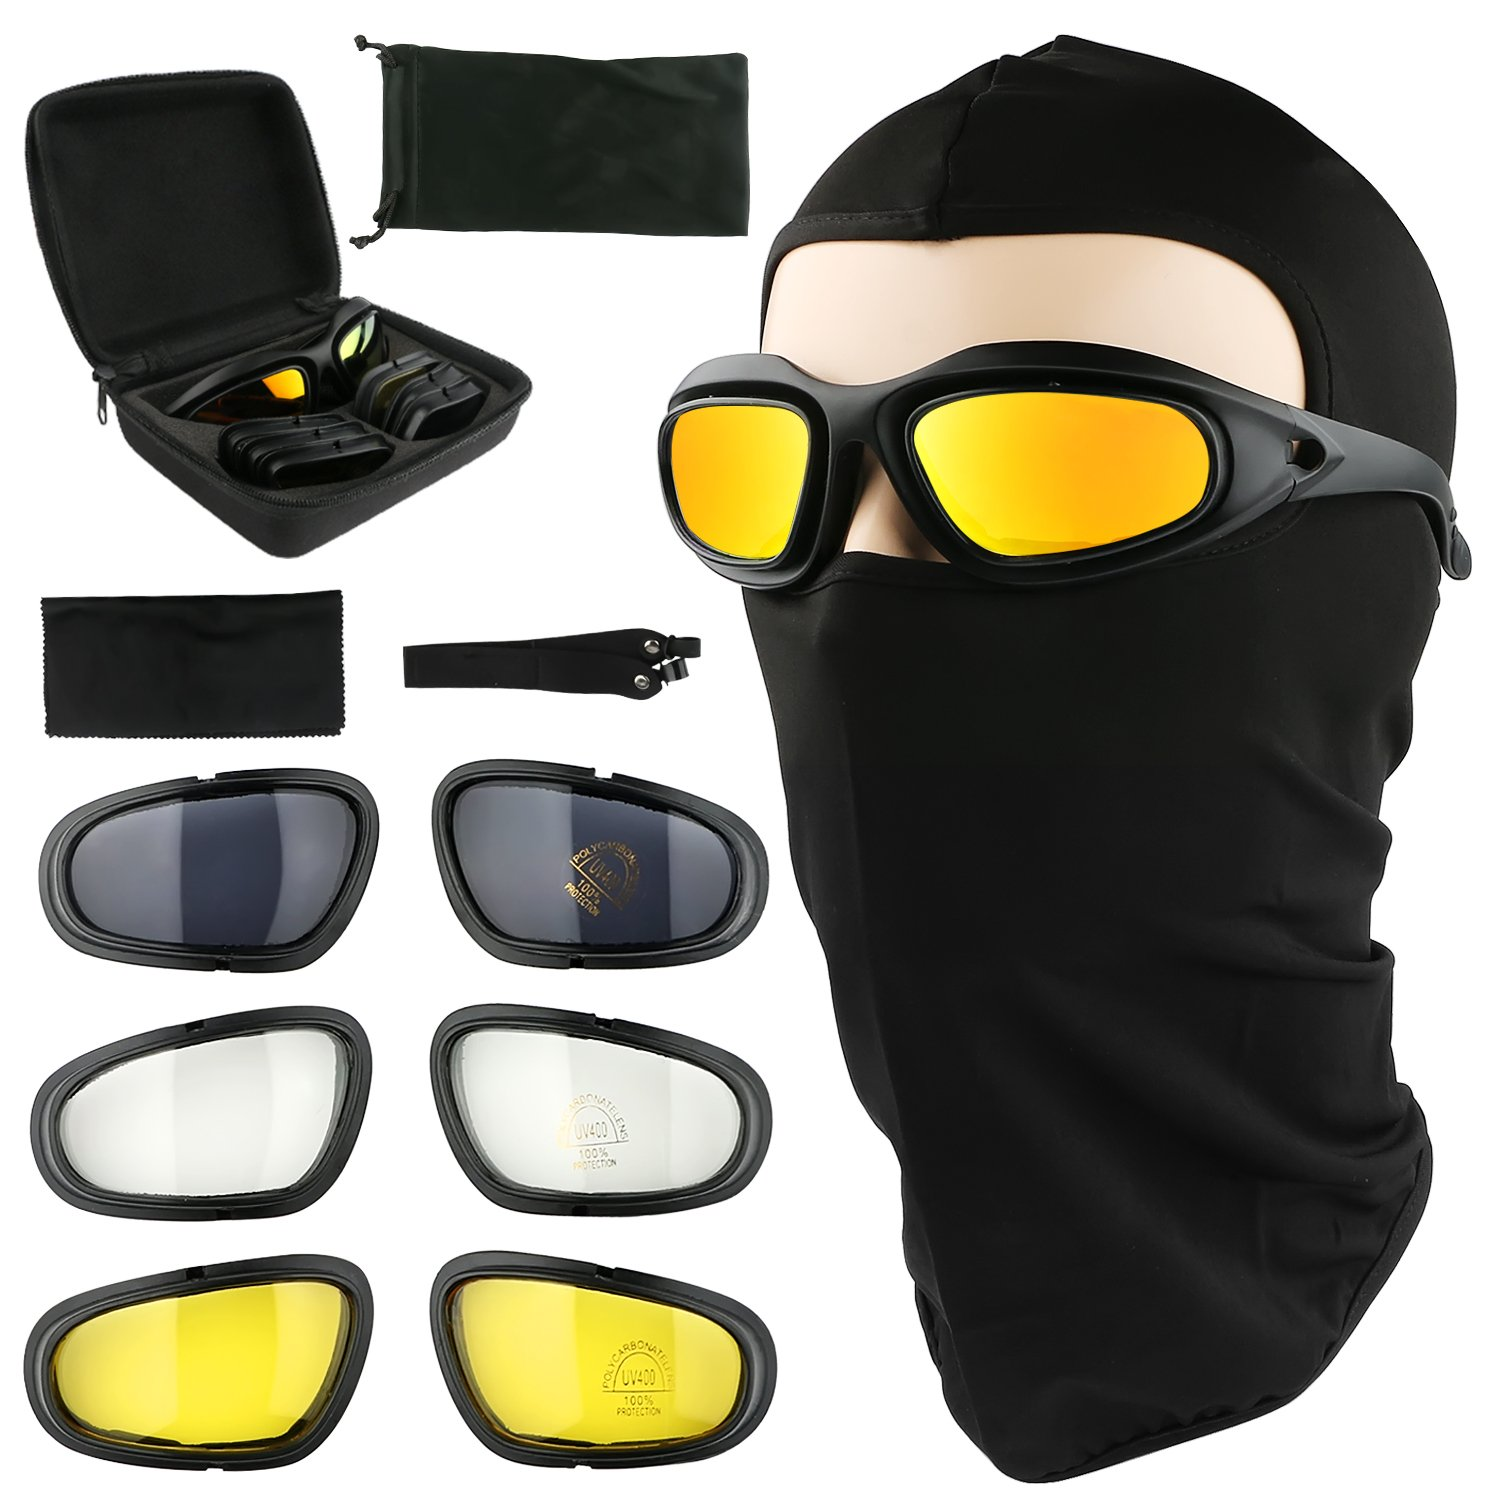 Motorcycle Riding Glasses UV400 Bicycle Safety Goggles Eyes protection Black Frame with 4 Pairs Lenses Come with a Balaclava Tactical Face Mask Outdoor Sports Motorcycle Sunglasses Goggles